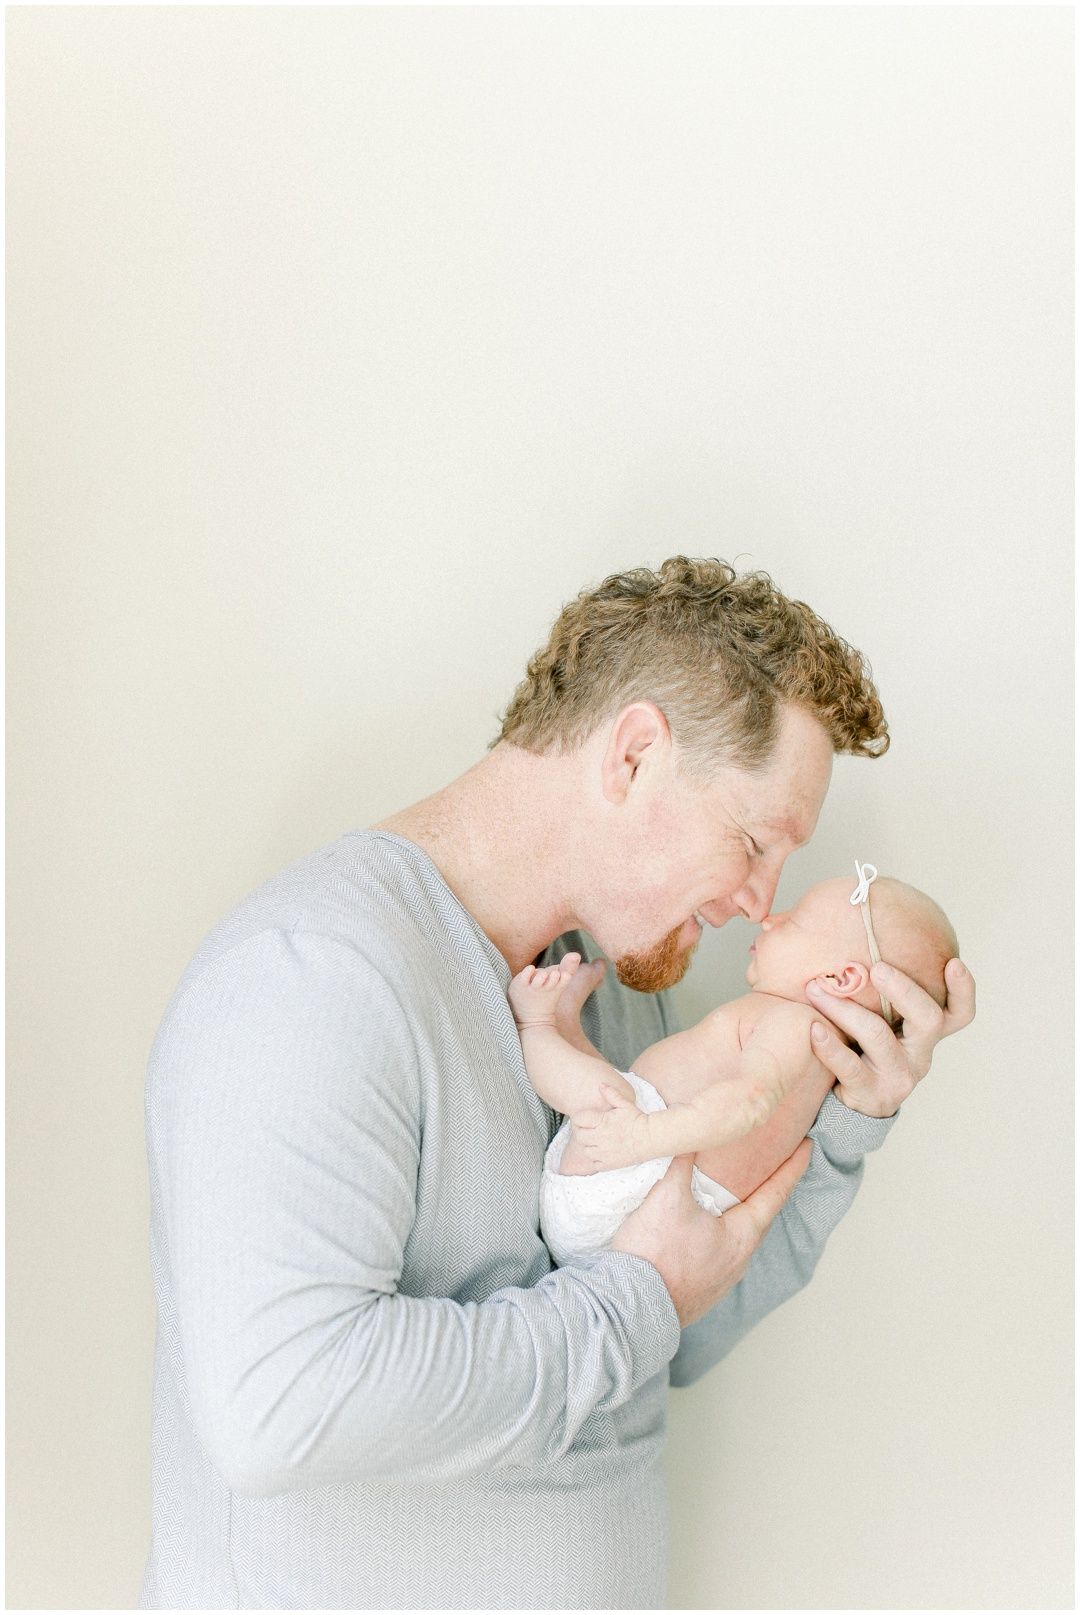 Newport_Beach_Newborn_Light_Airy_Natural_Photographer_Newport_Beach_Photographer_Orange_County_Family_Photographer_Cori_Kleckner_Photography_Newport_Beach_Photographer_newborn_kole_calhoun56_kole_calhoun_Jennifer_Calhoun_Knox_Calhoun_3788.jpg